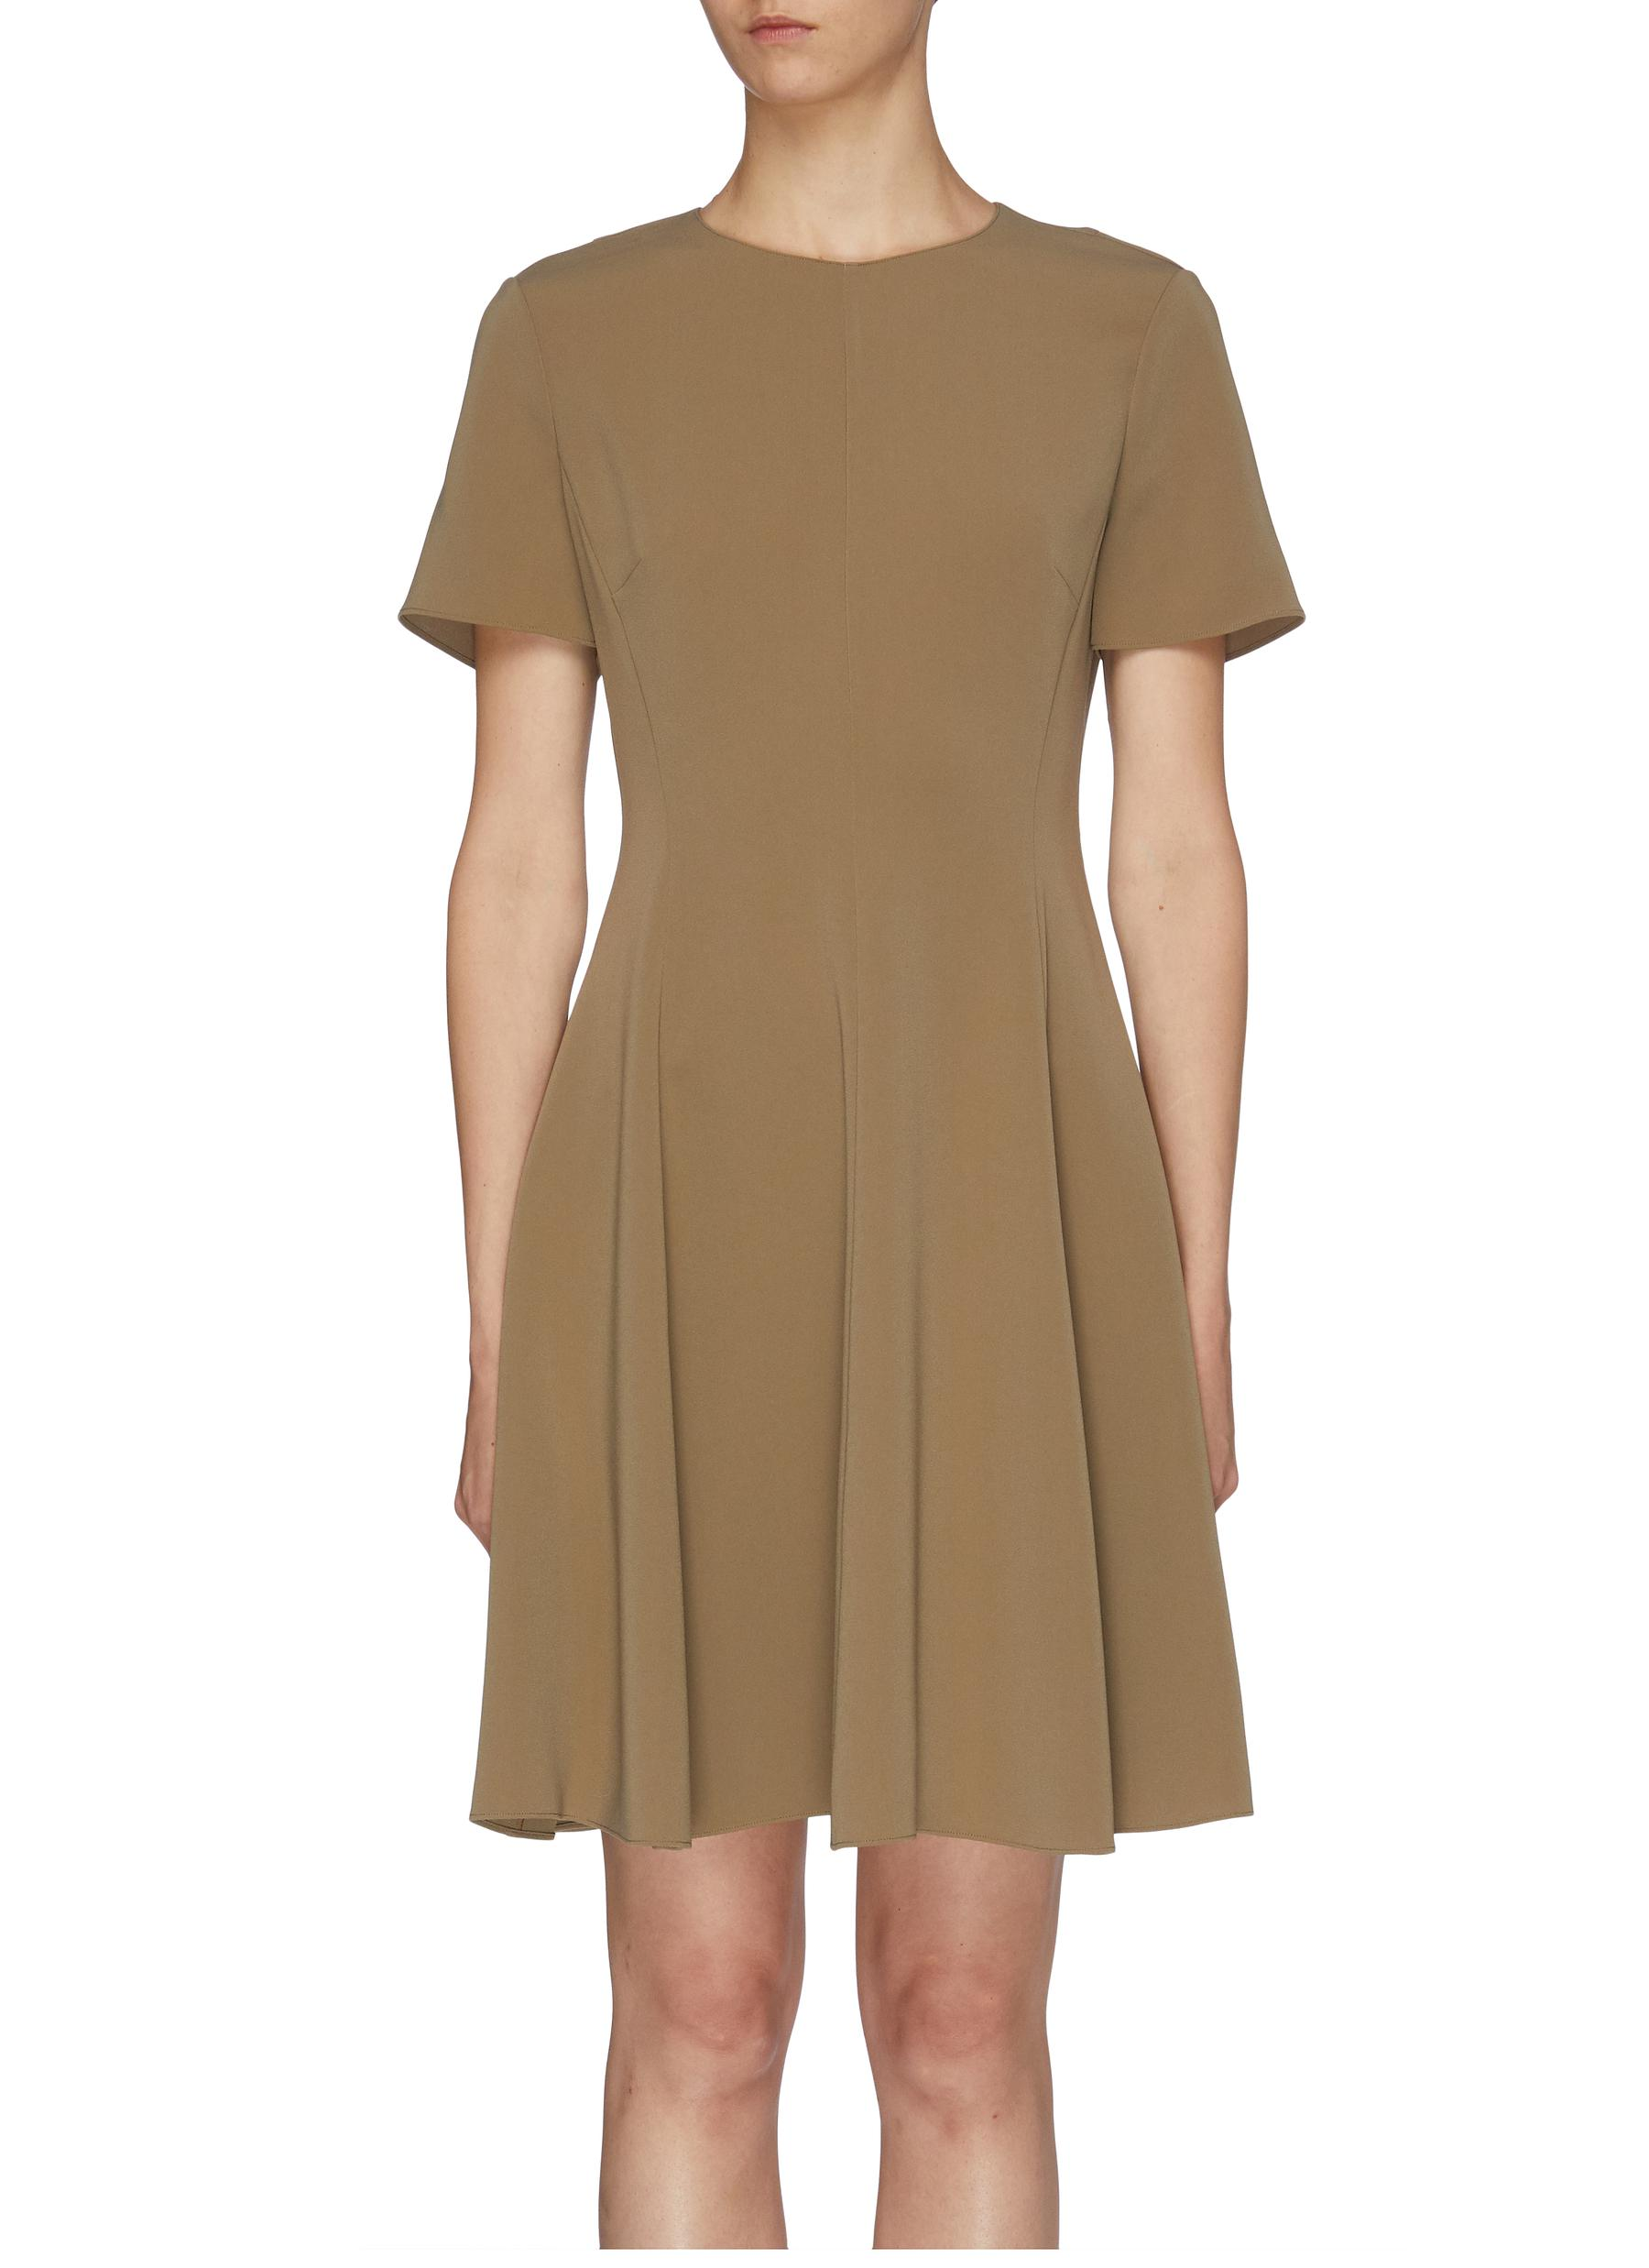 Flared crepe dress by Theory